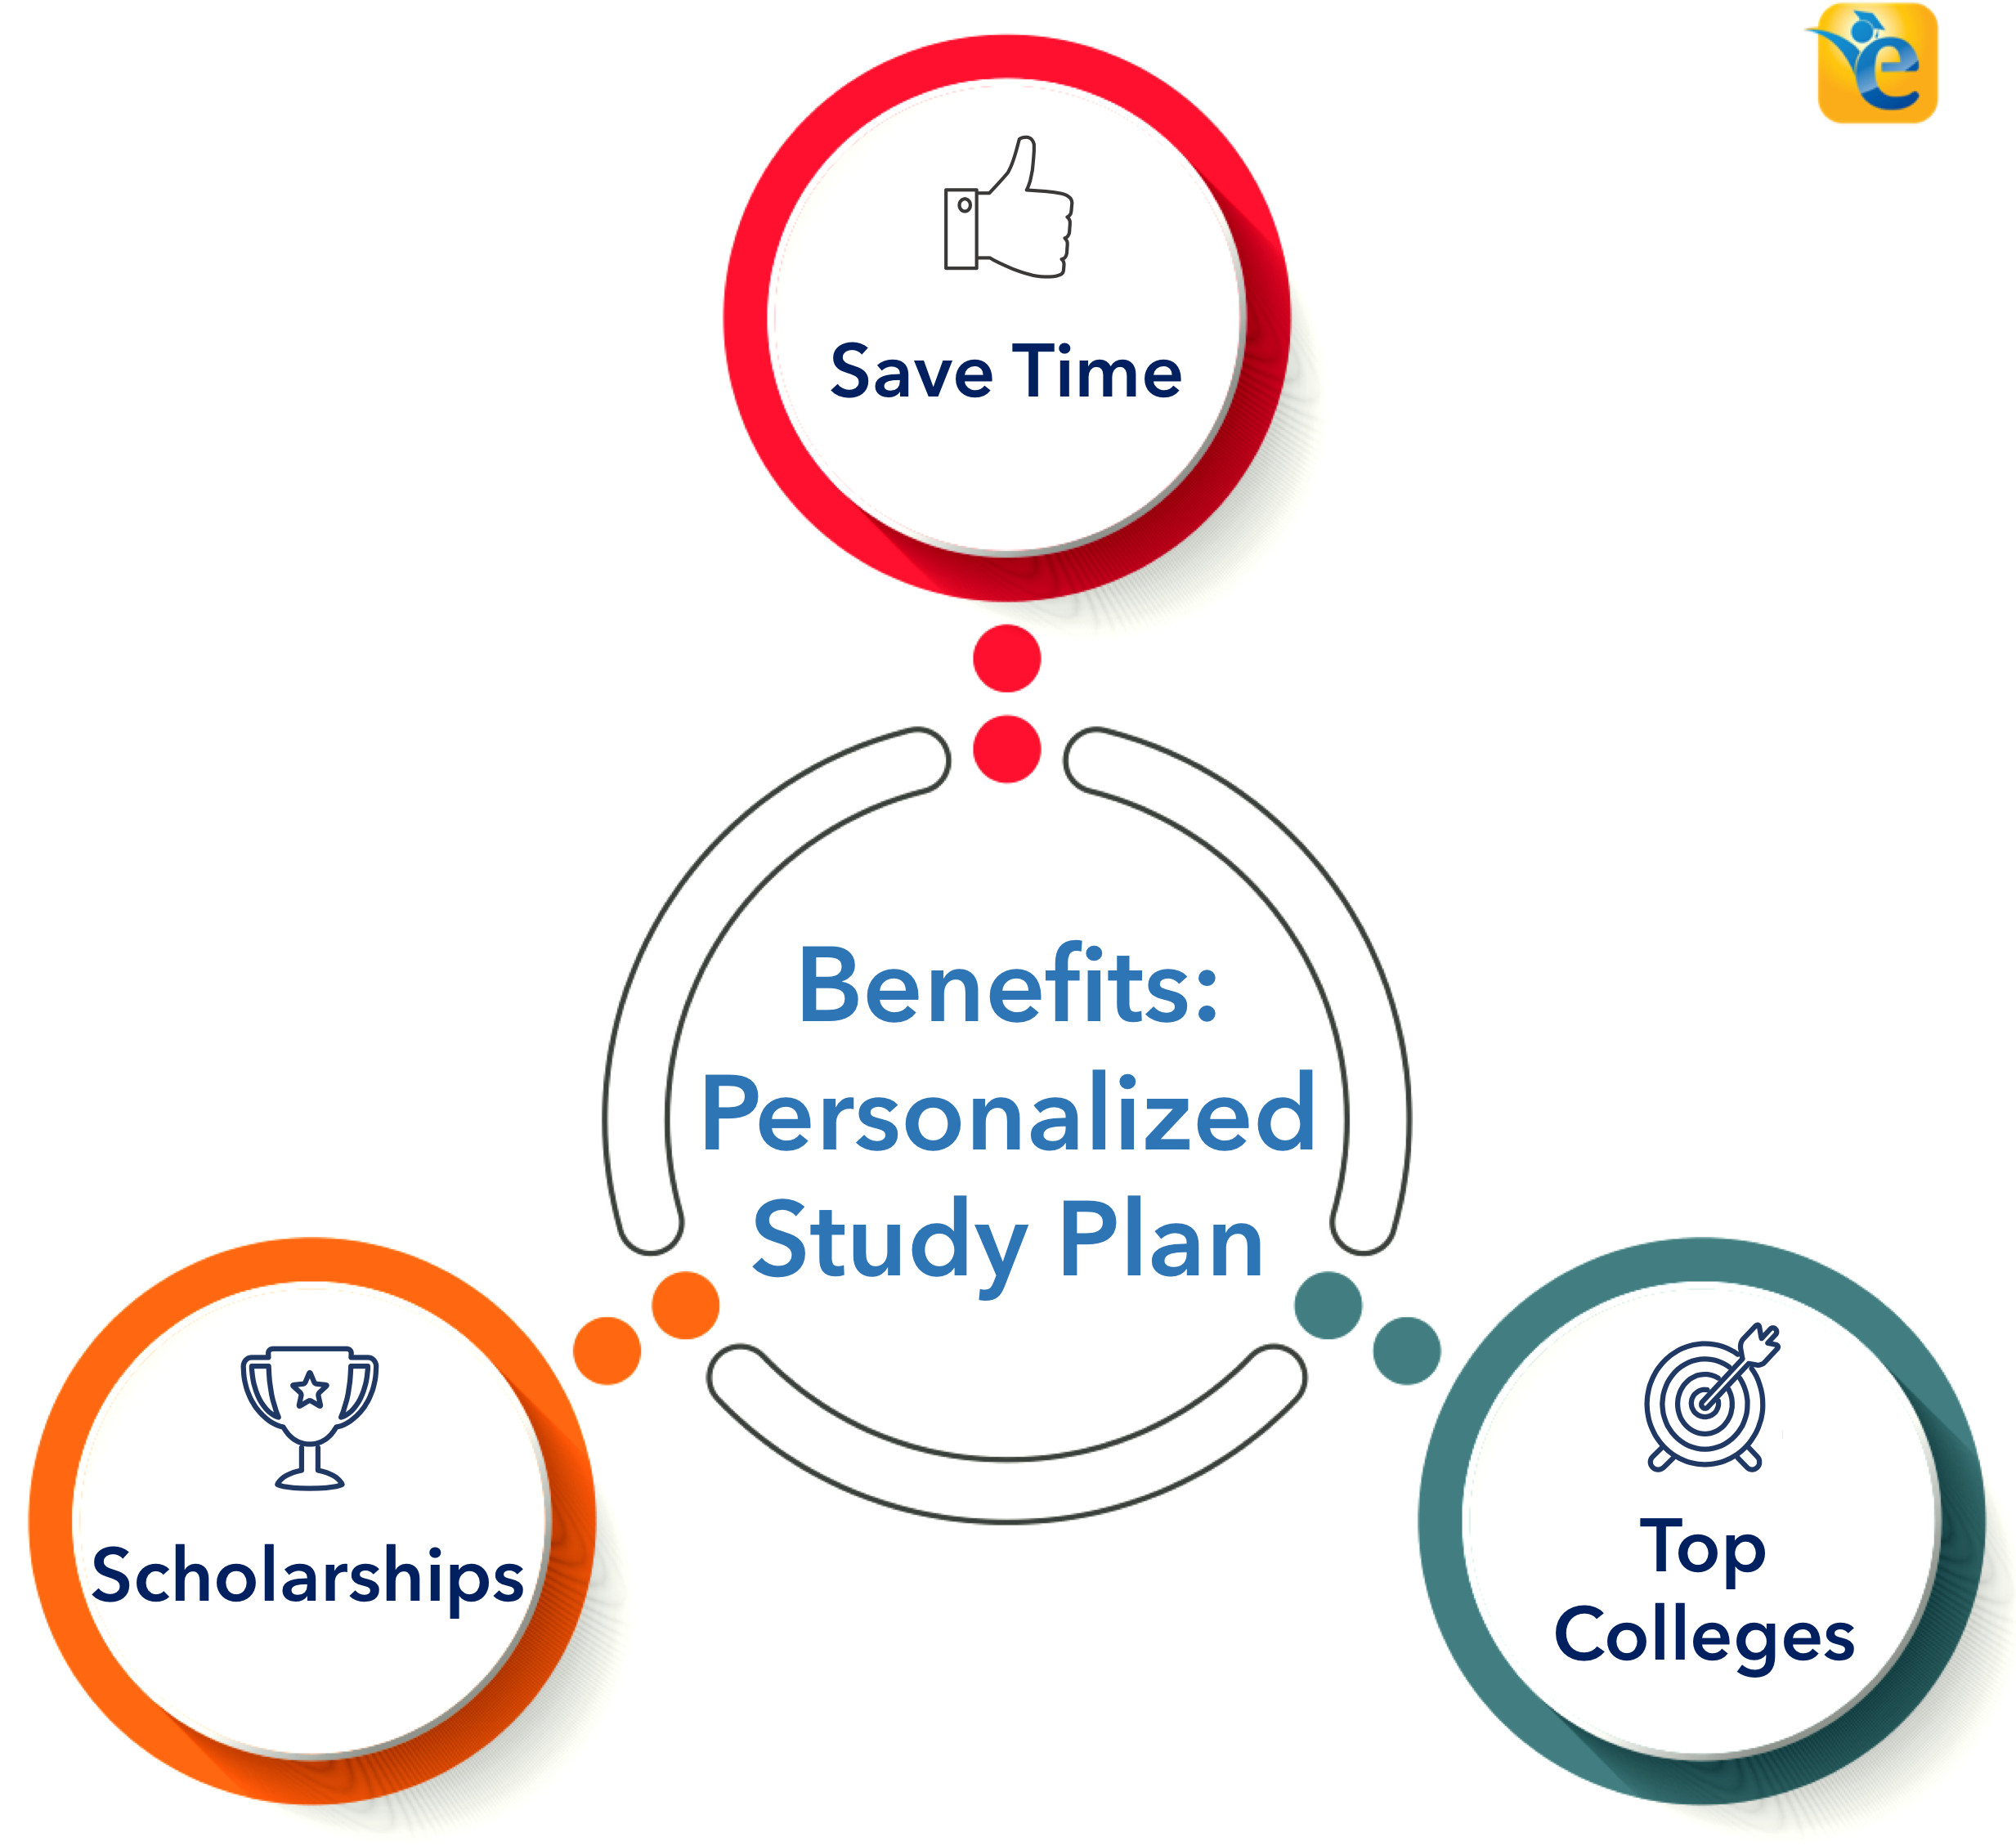 Benefits of Personalized GMAT Study Plan